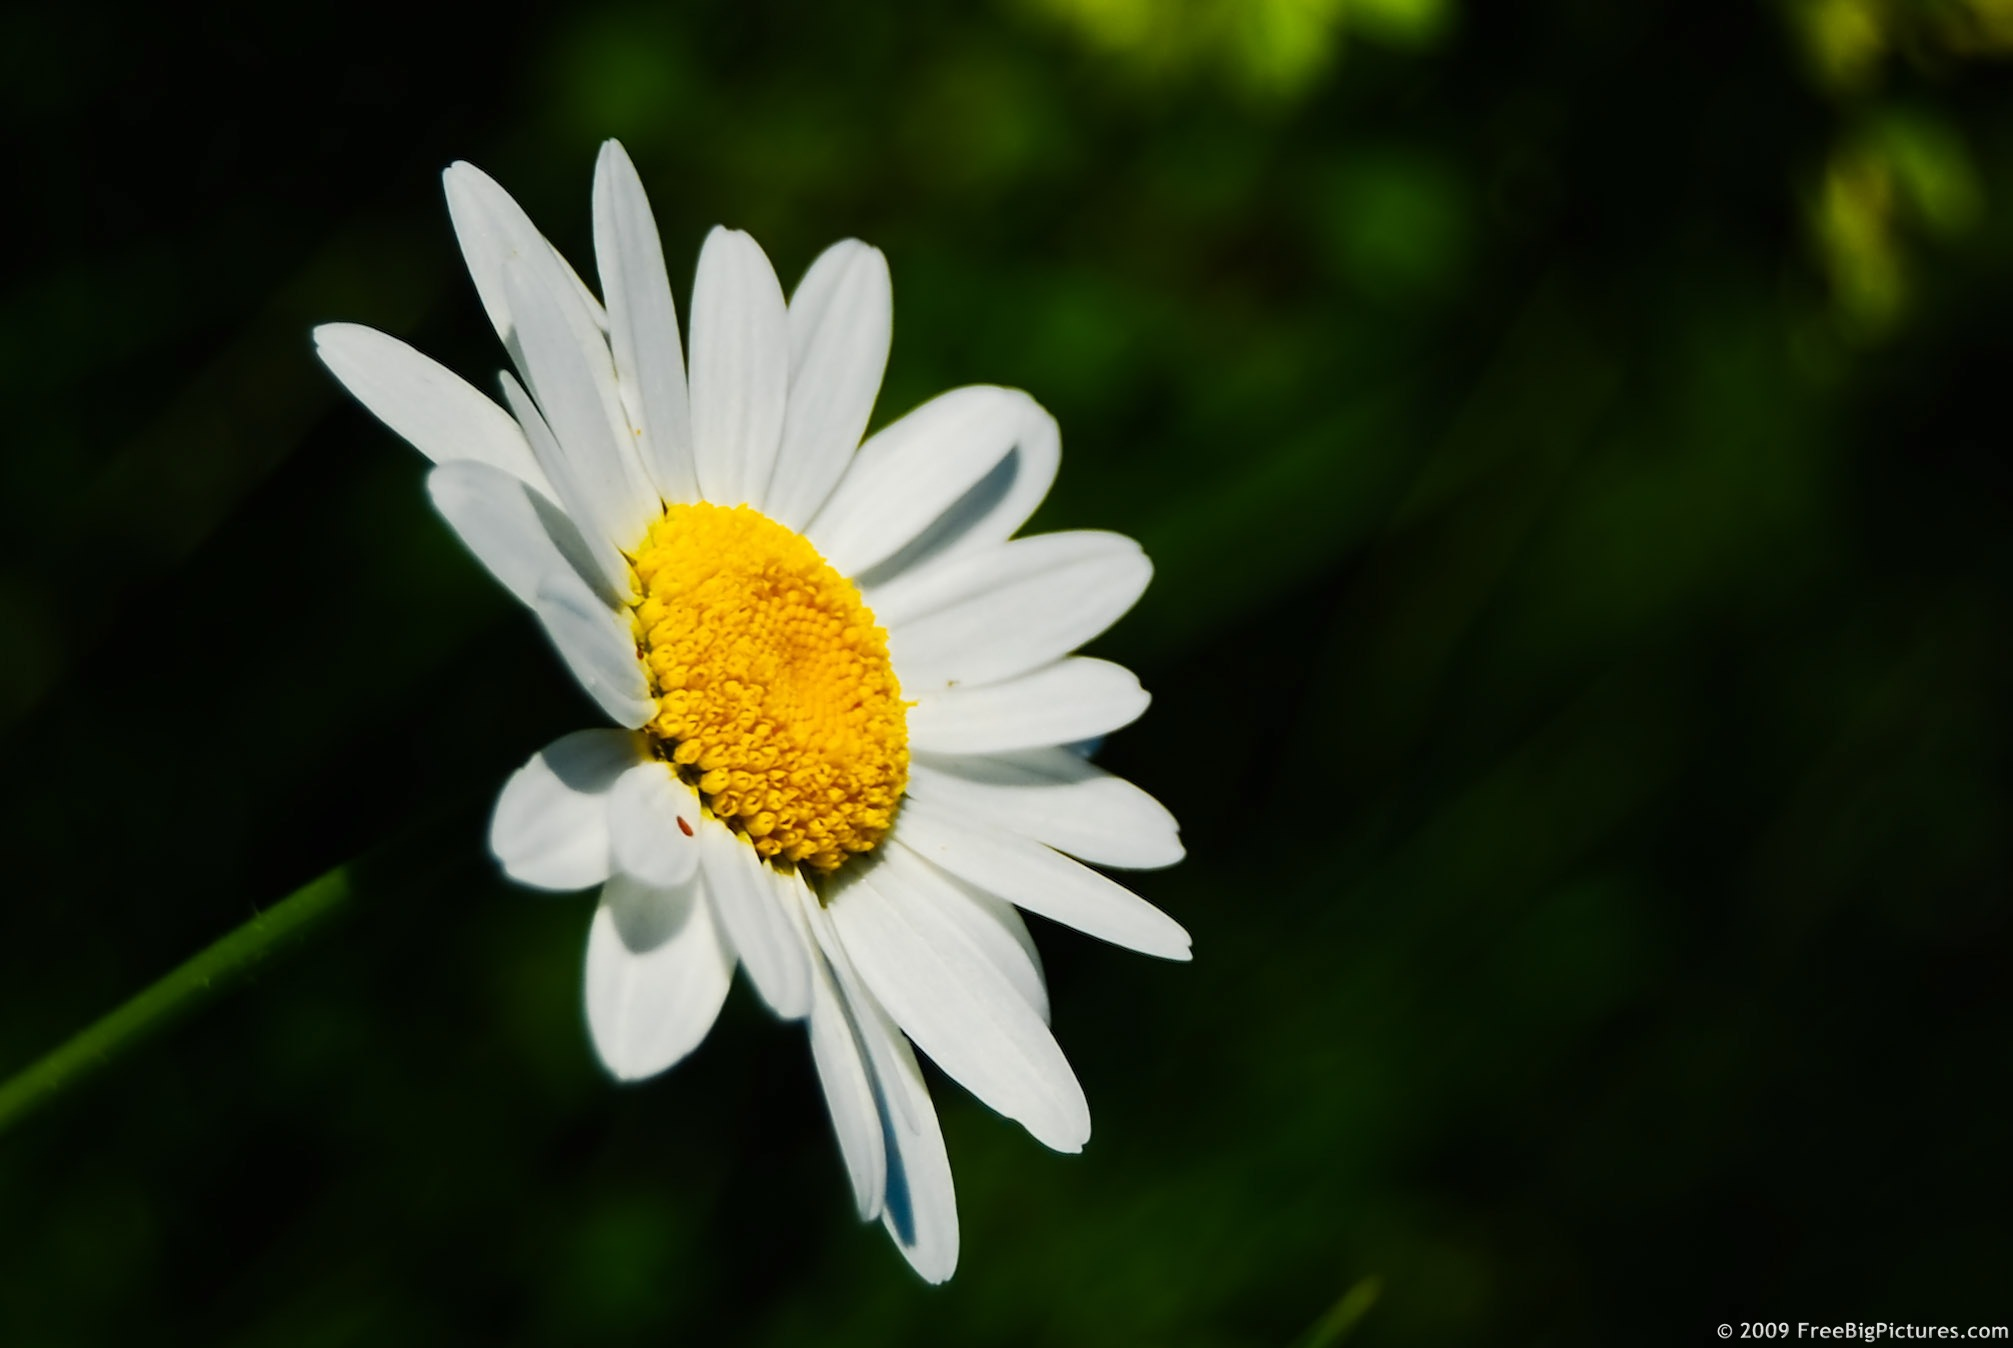 daisy flower, Natural flower